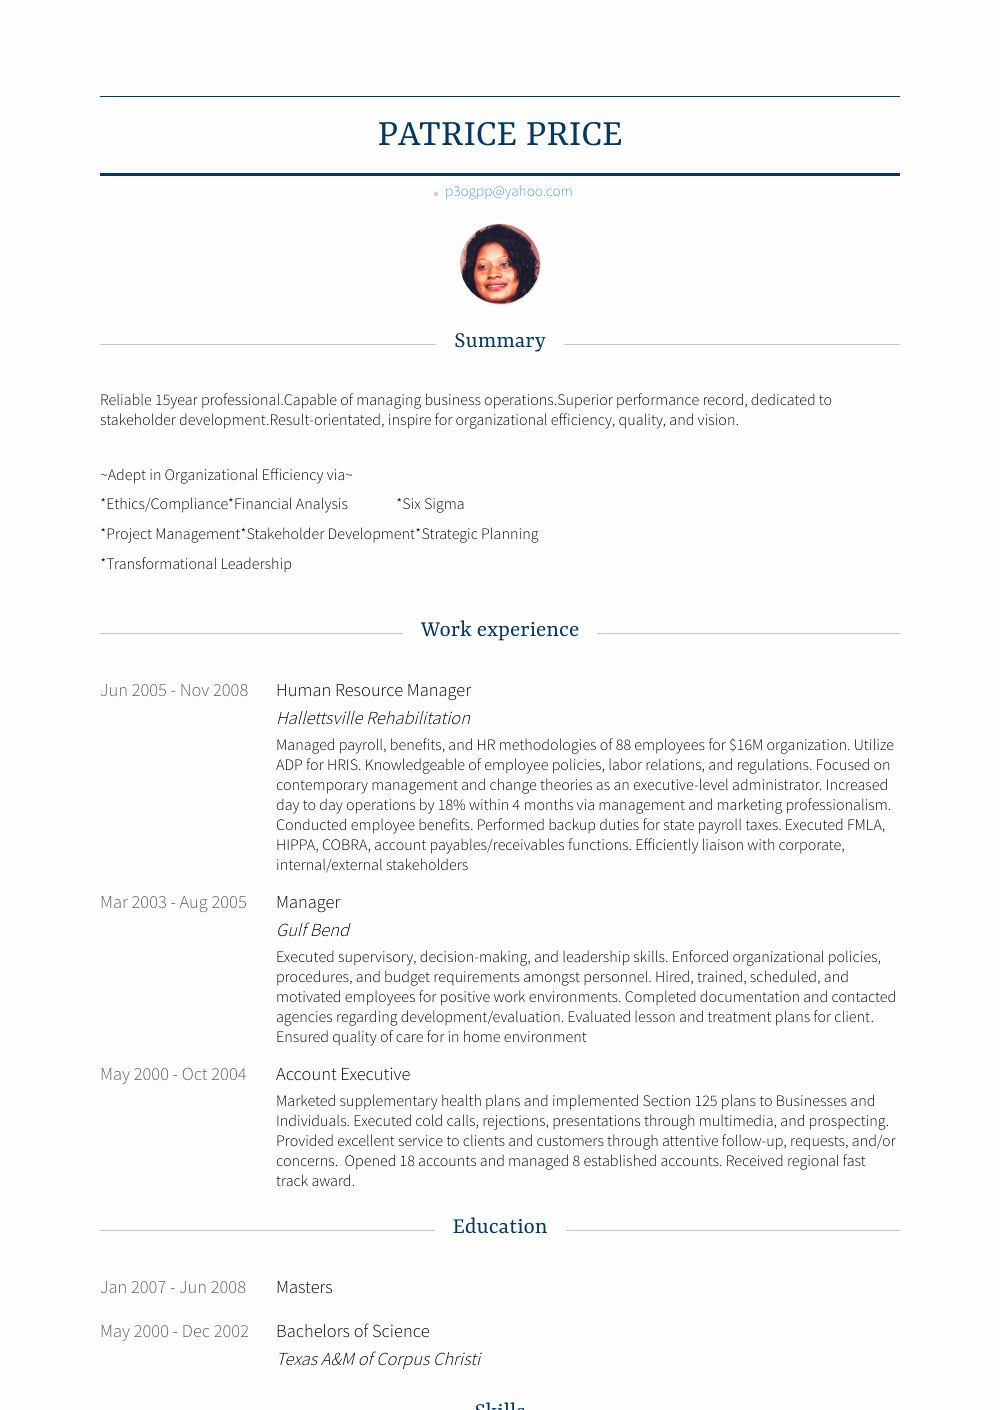 Human Resources Manager Resume New Human Resource Manager Resume Samples & Templates